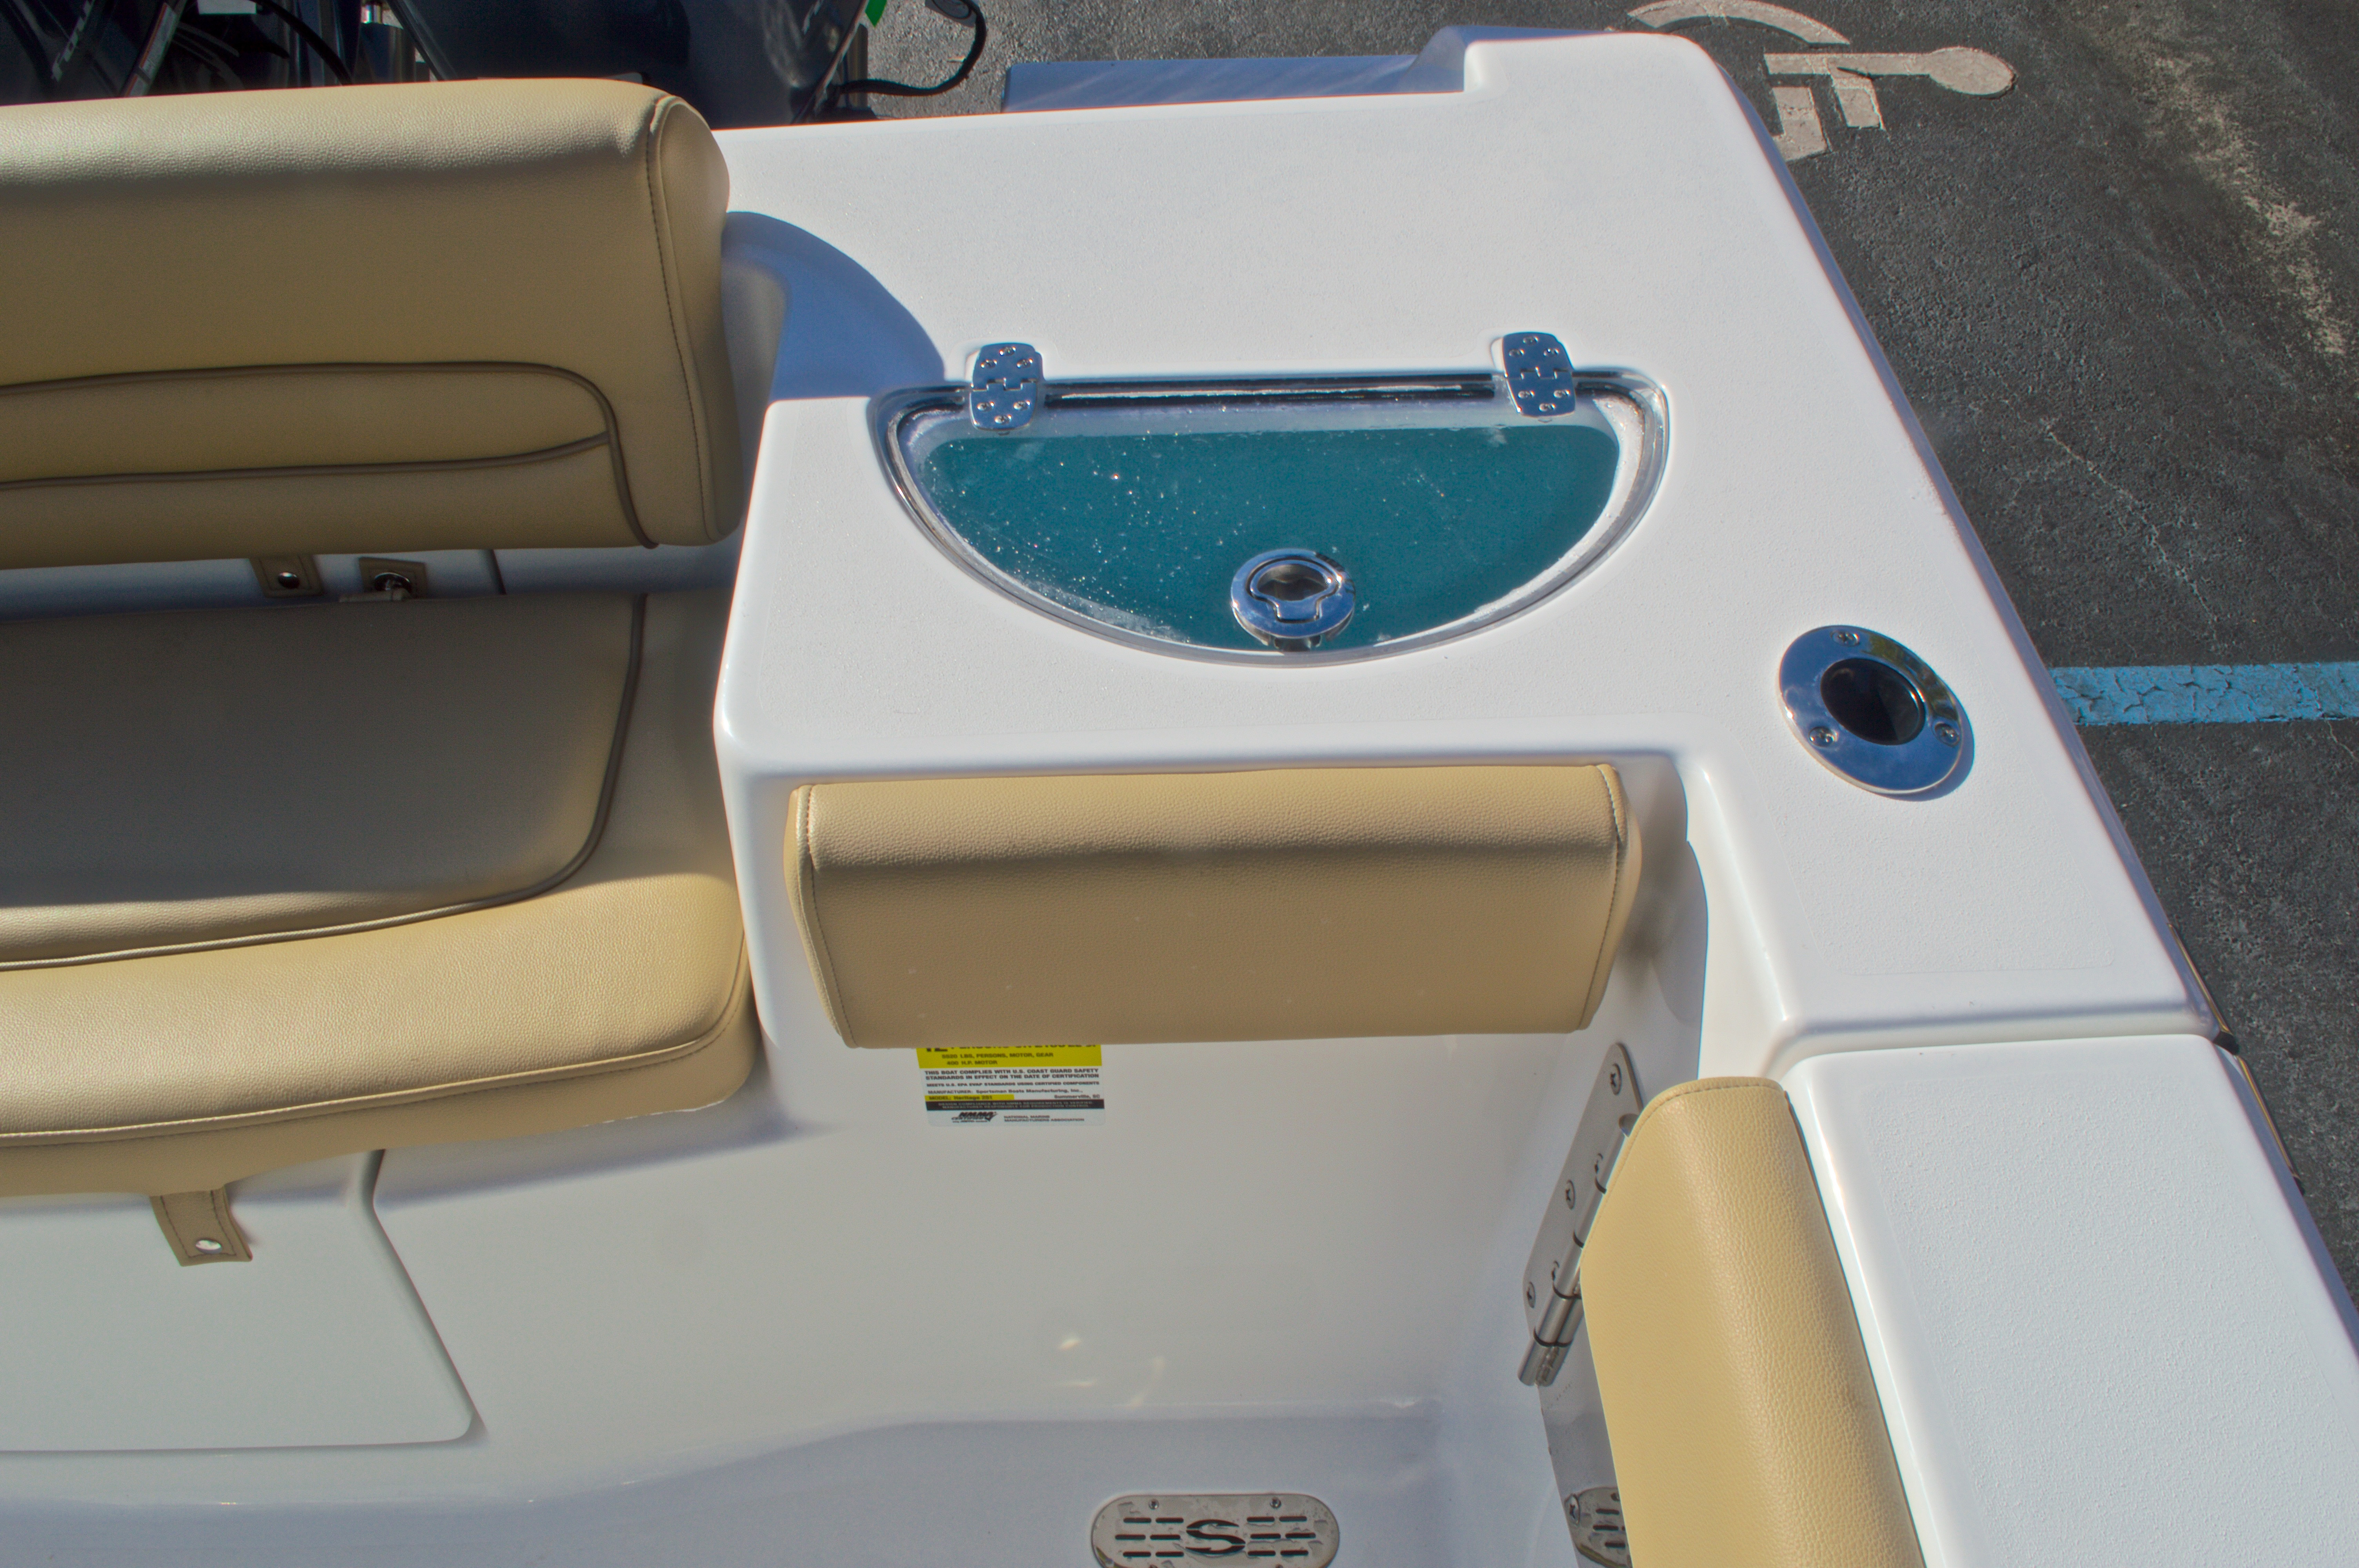 Thumbnail 16 for New 2016 Sportsman Heritage 251 Center Console boat for sale in West Palm Beach, FL